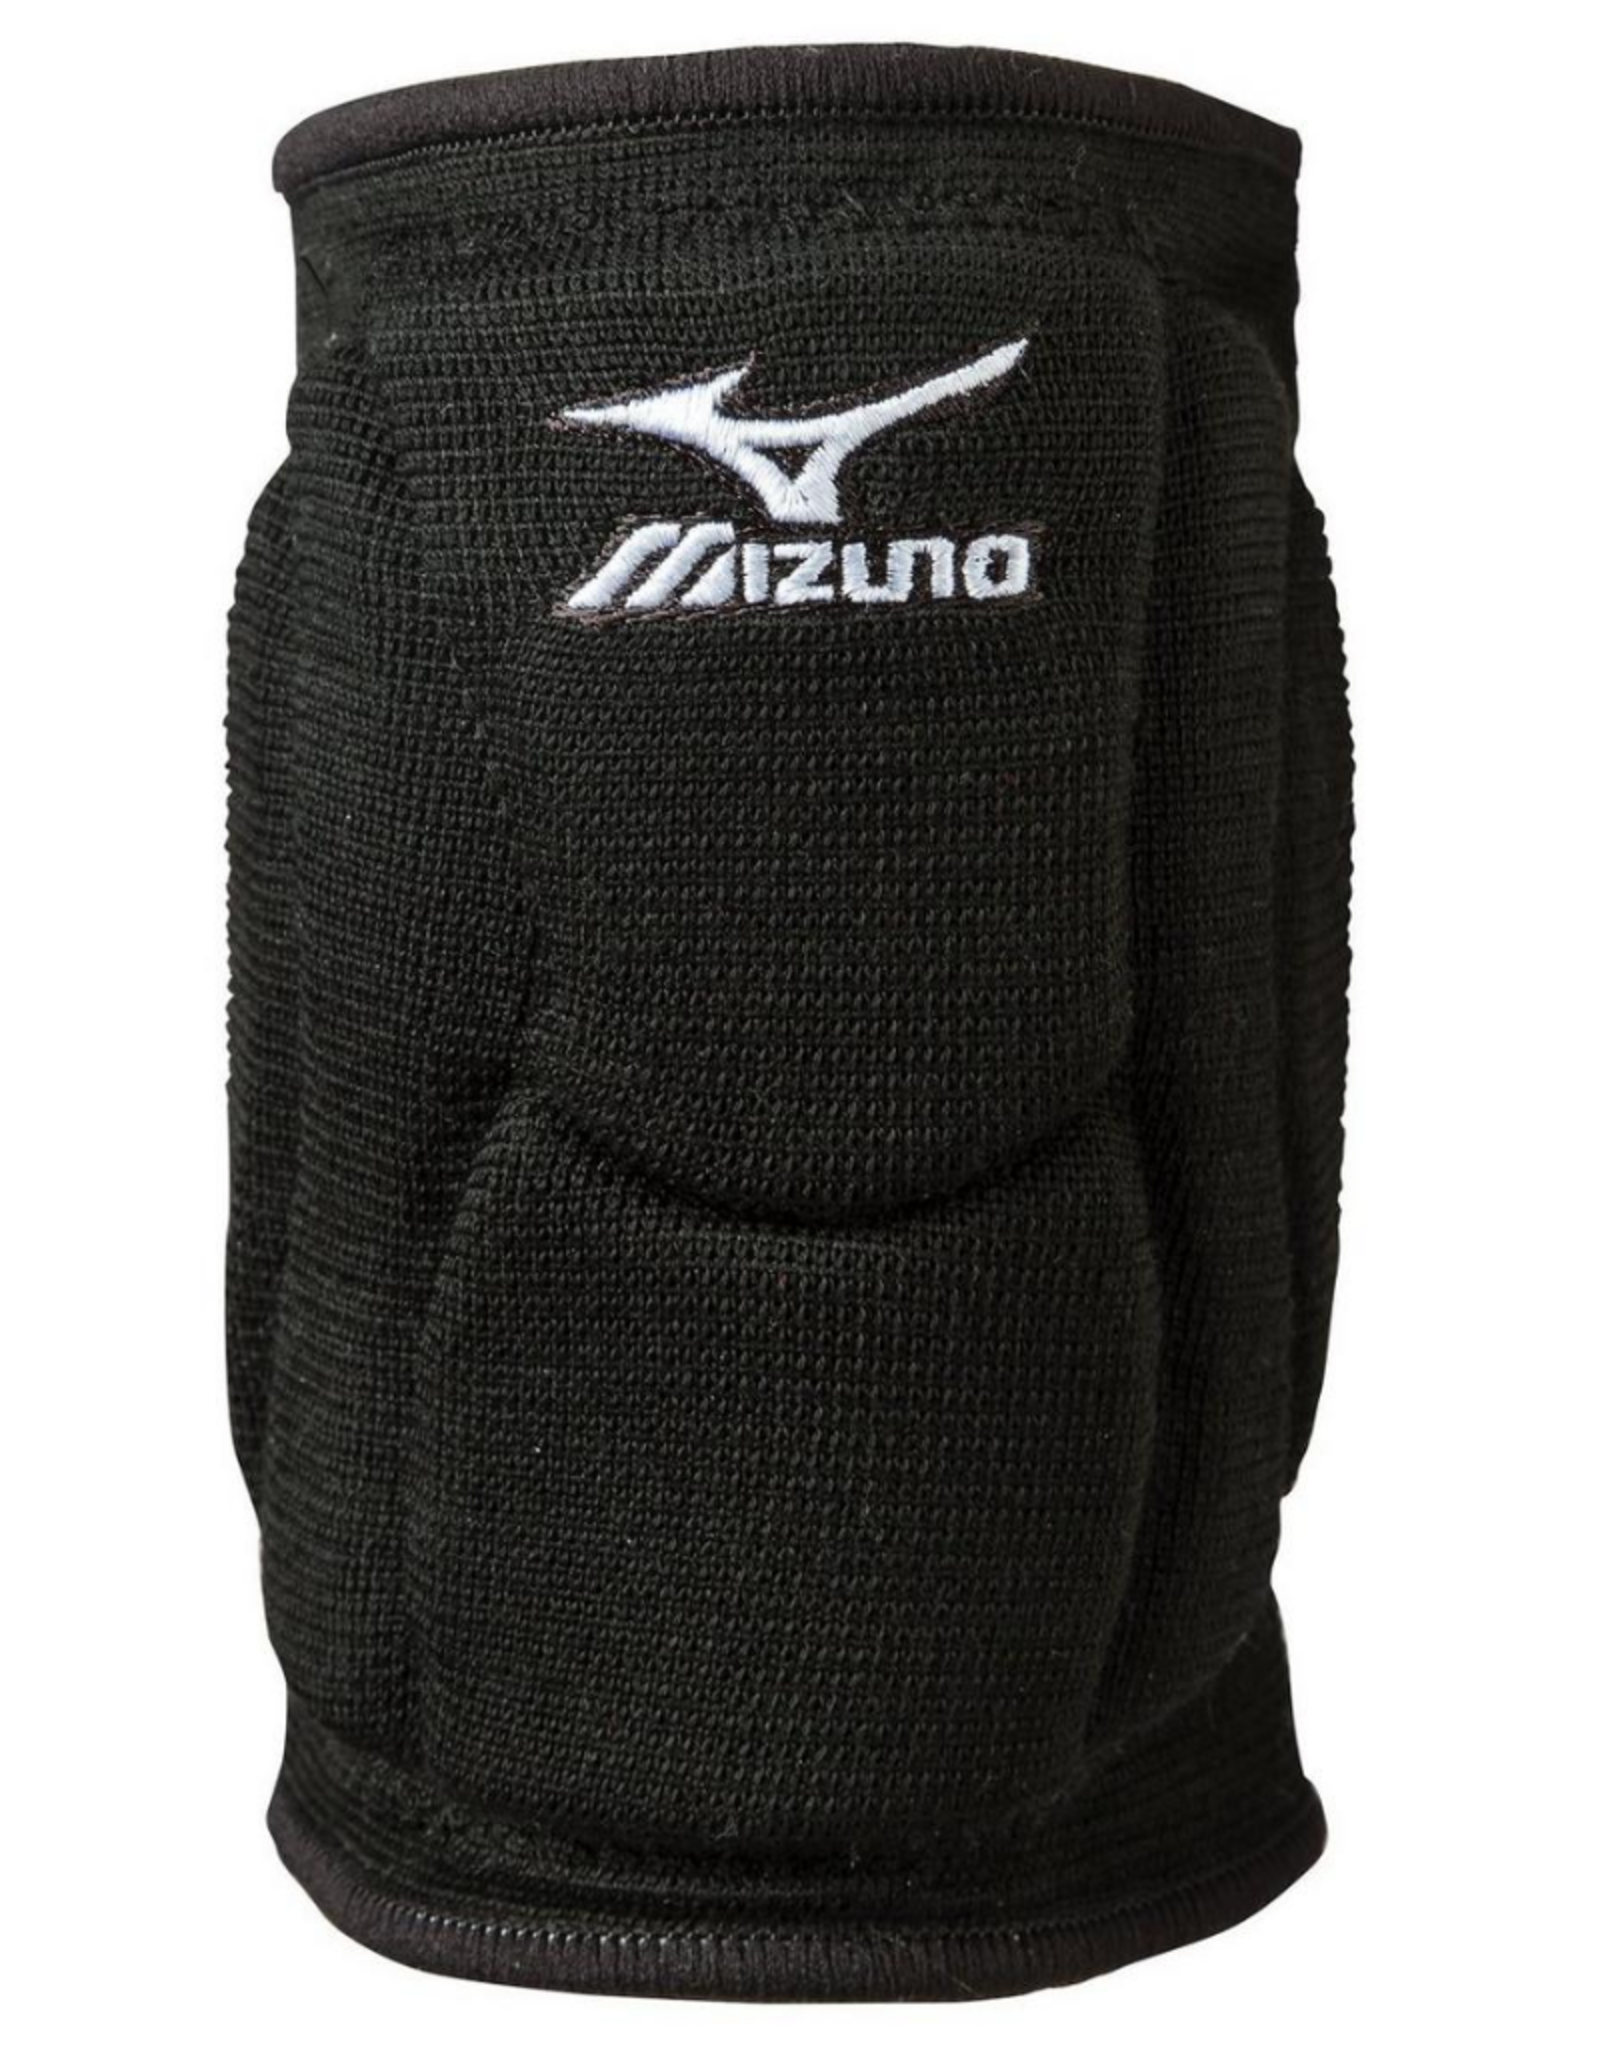 Mizuno Adult Elite 9 SL2 Volleyball Kneepad Black